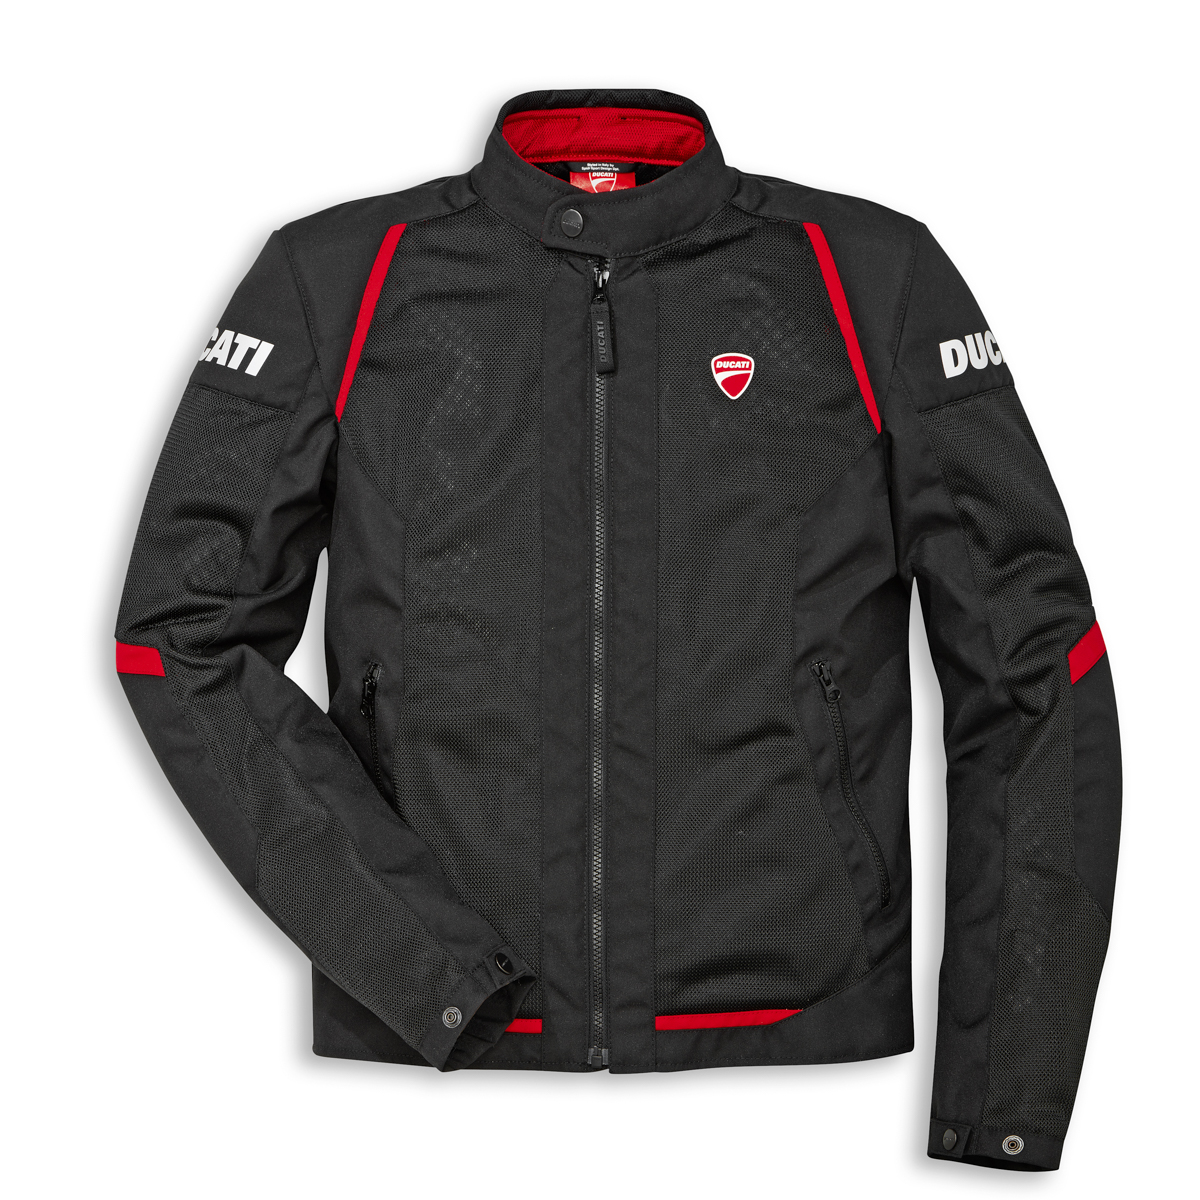 All-new Ducati Ventilated Jackets